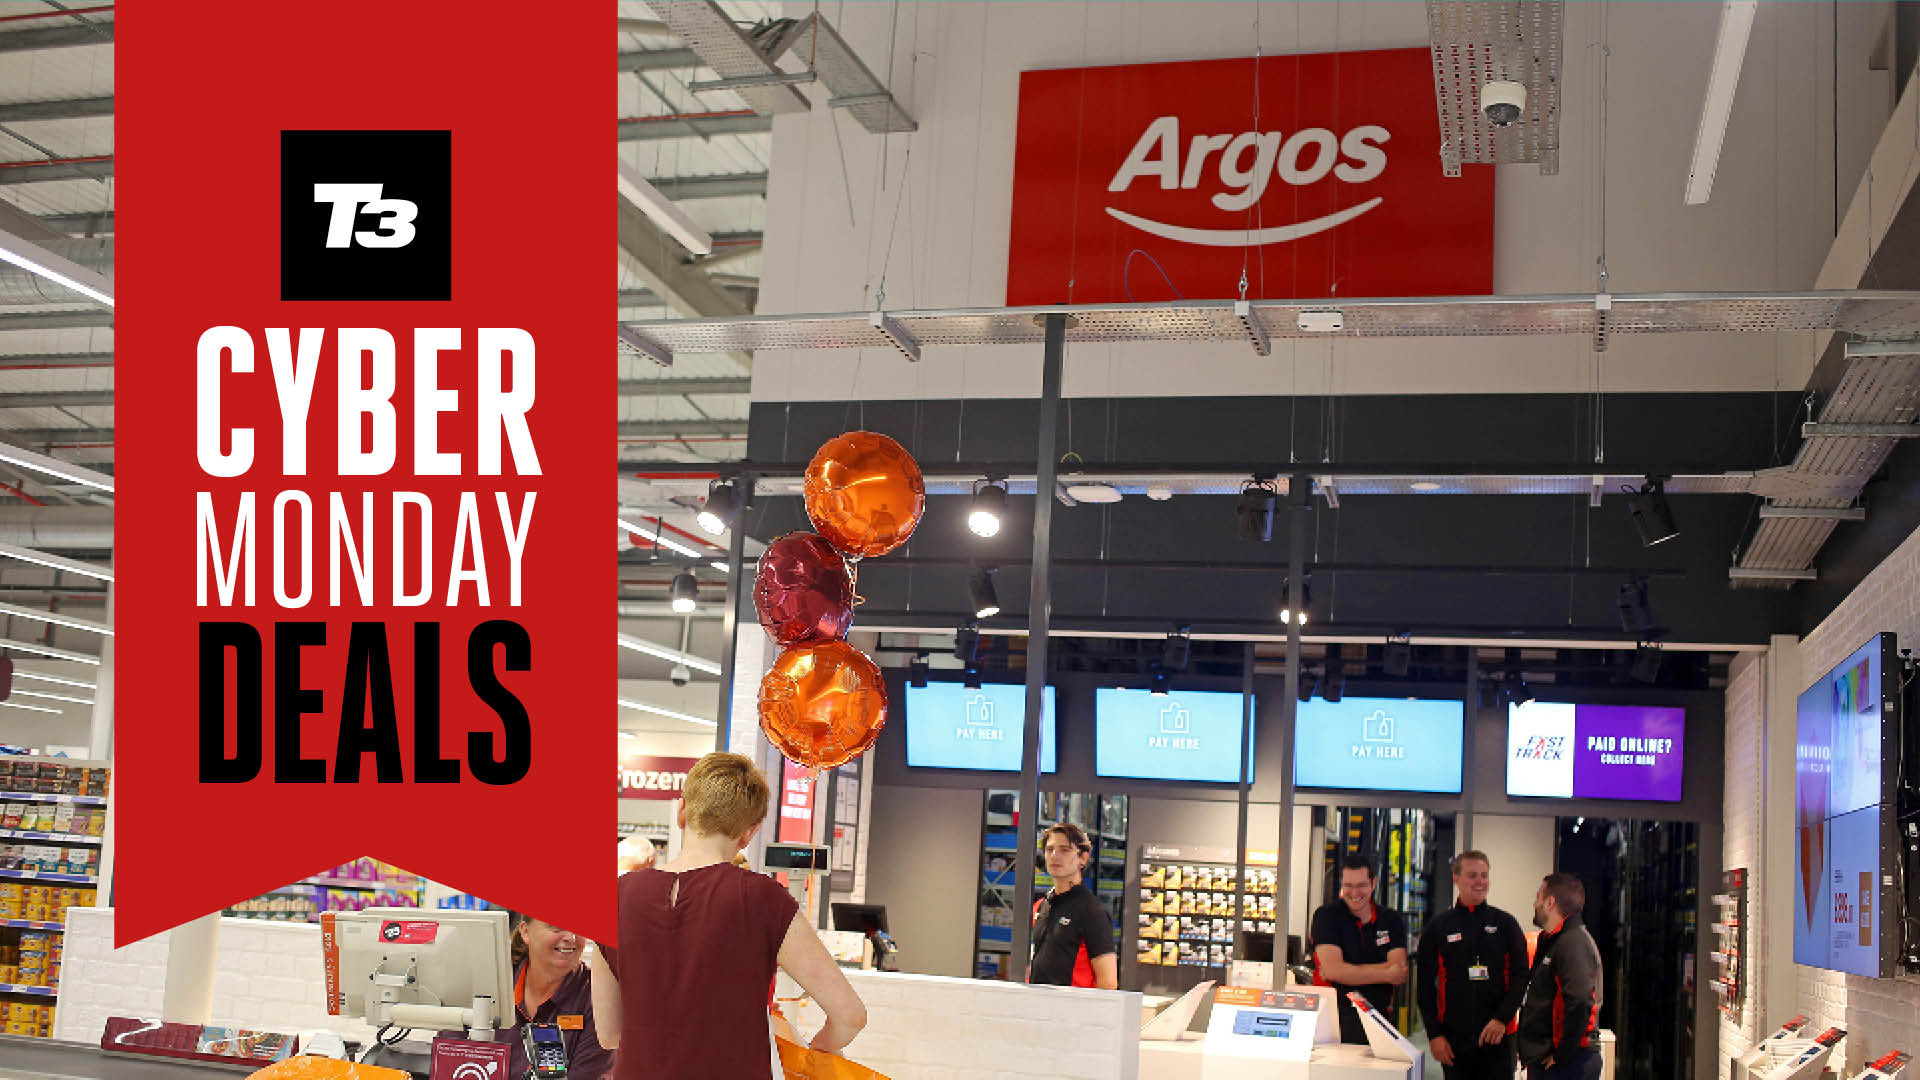 Argos Cyber Monday Deals These Best Deals End Soon T3